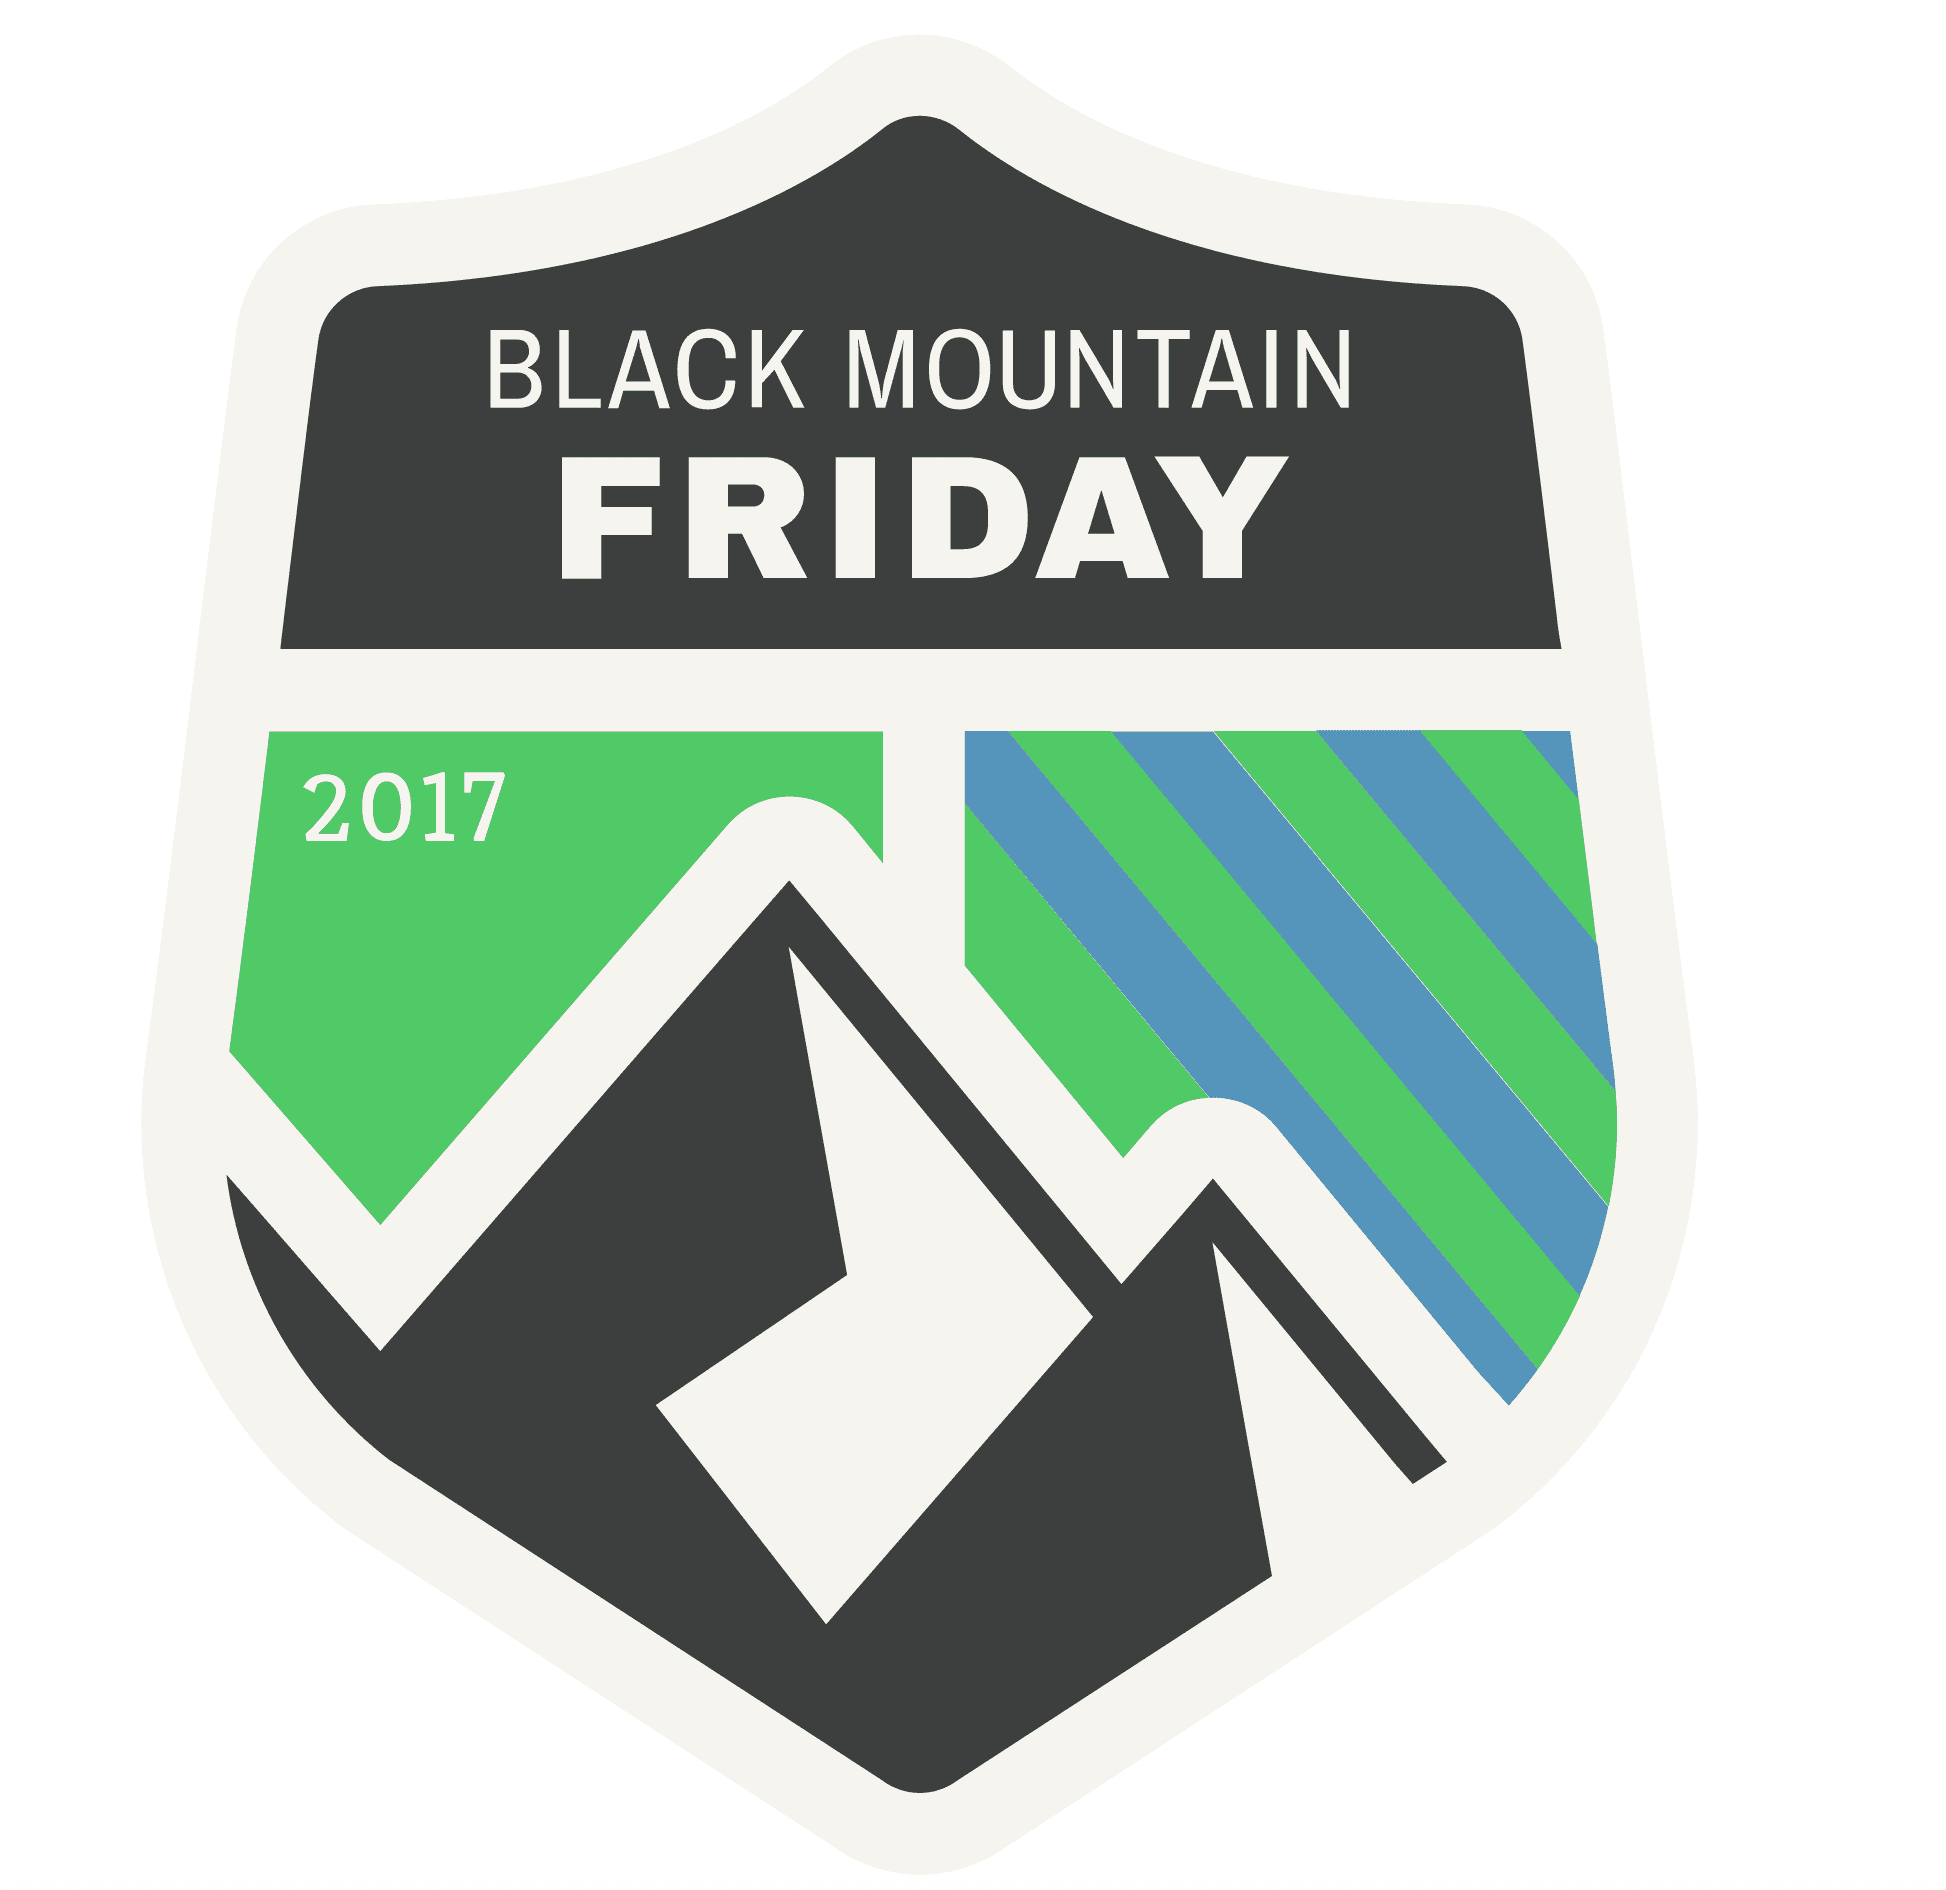 Black Mountain Friday logo on RaceRaves